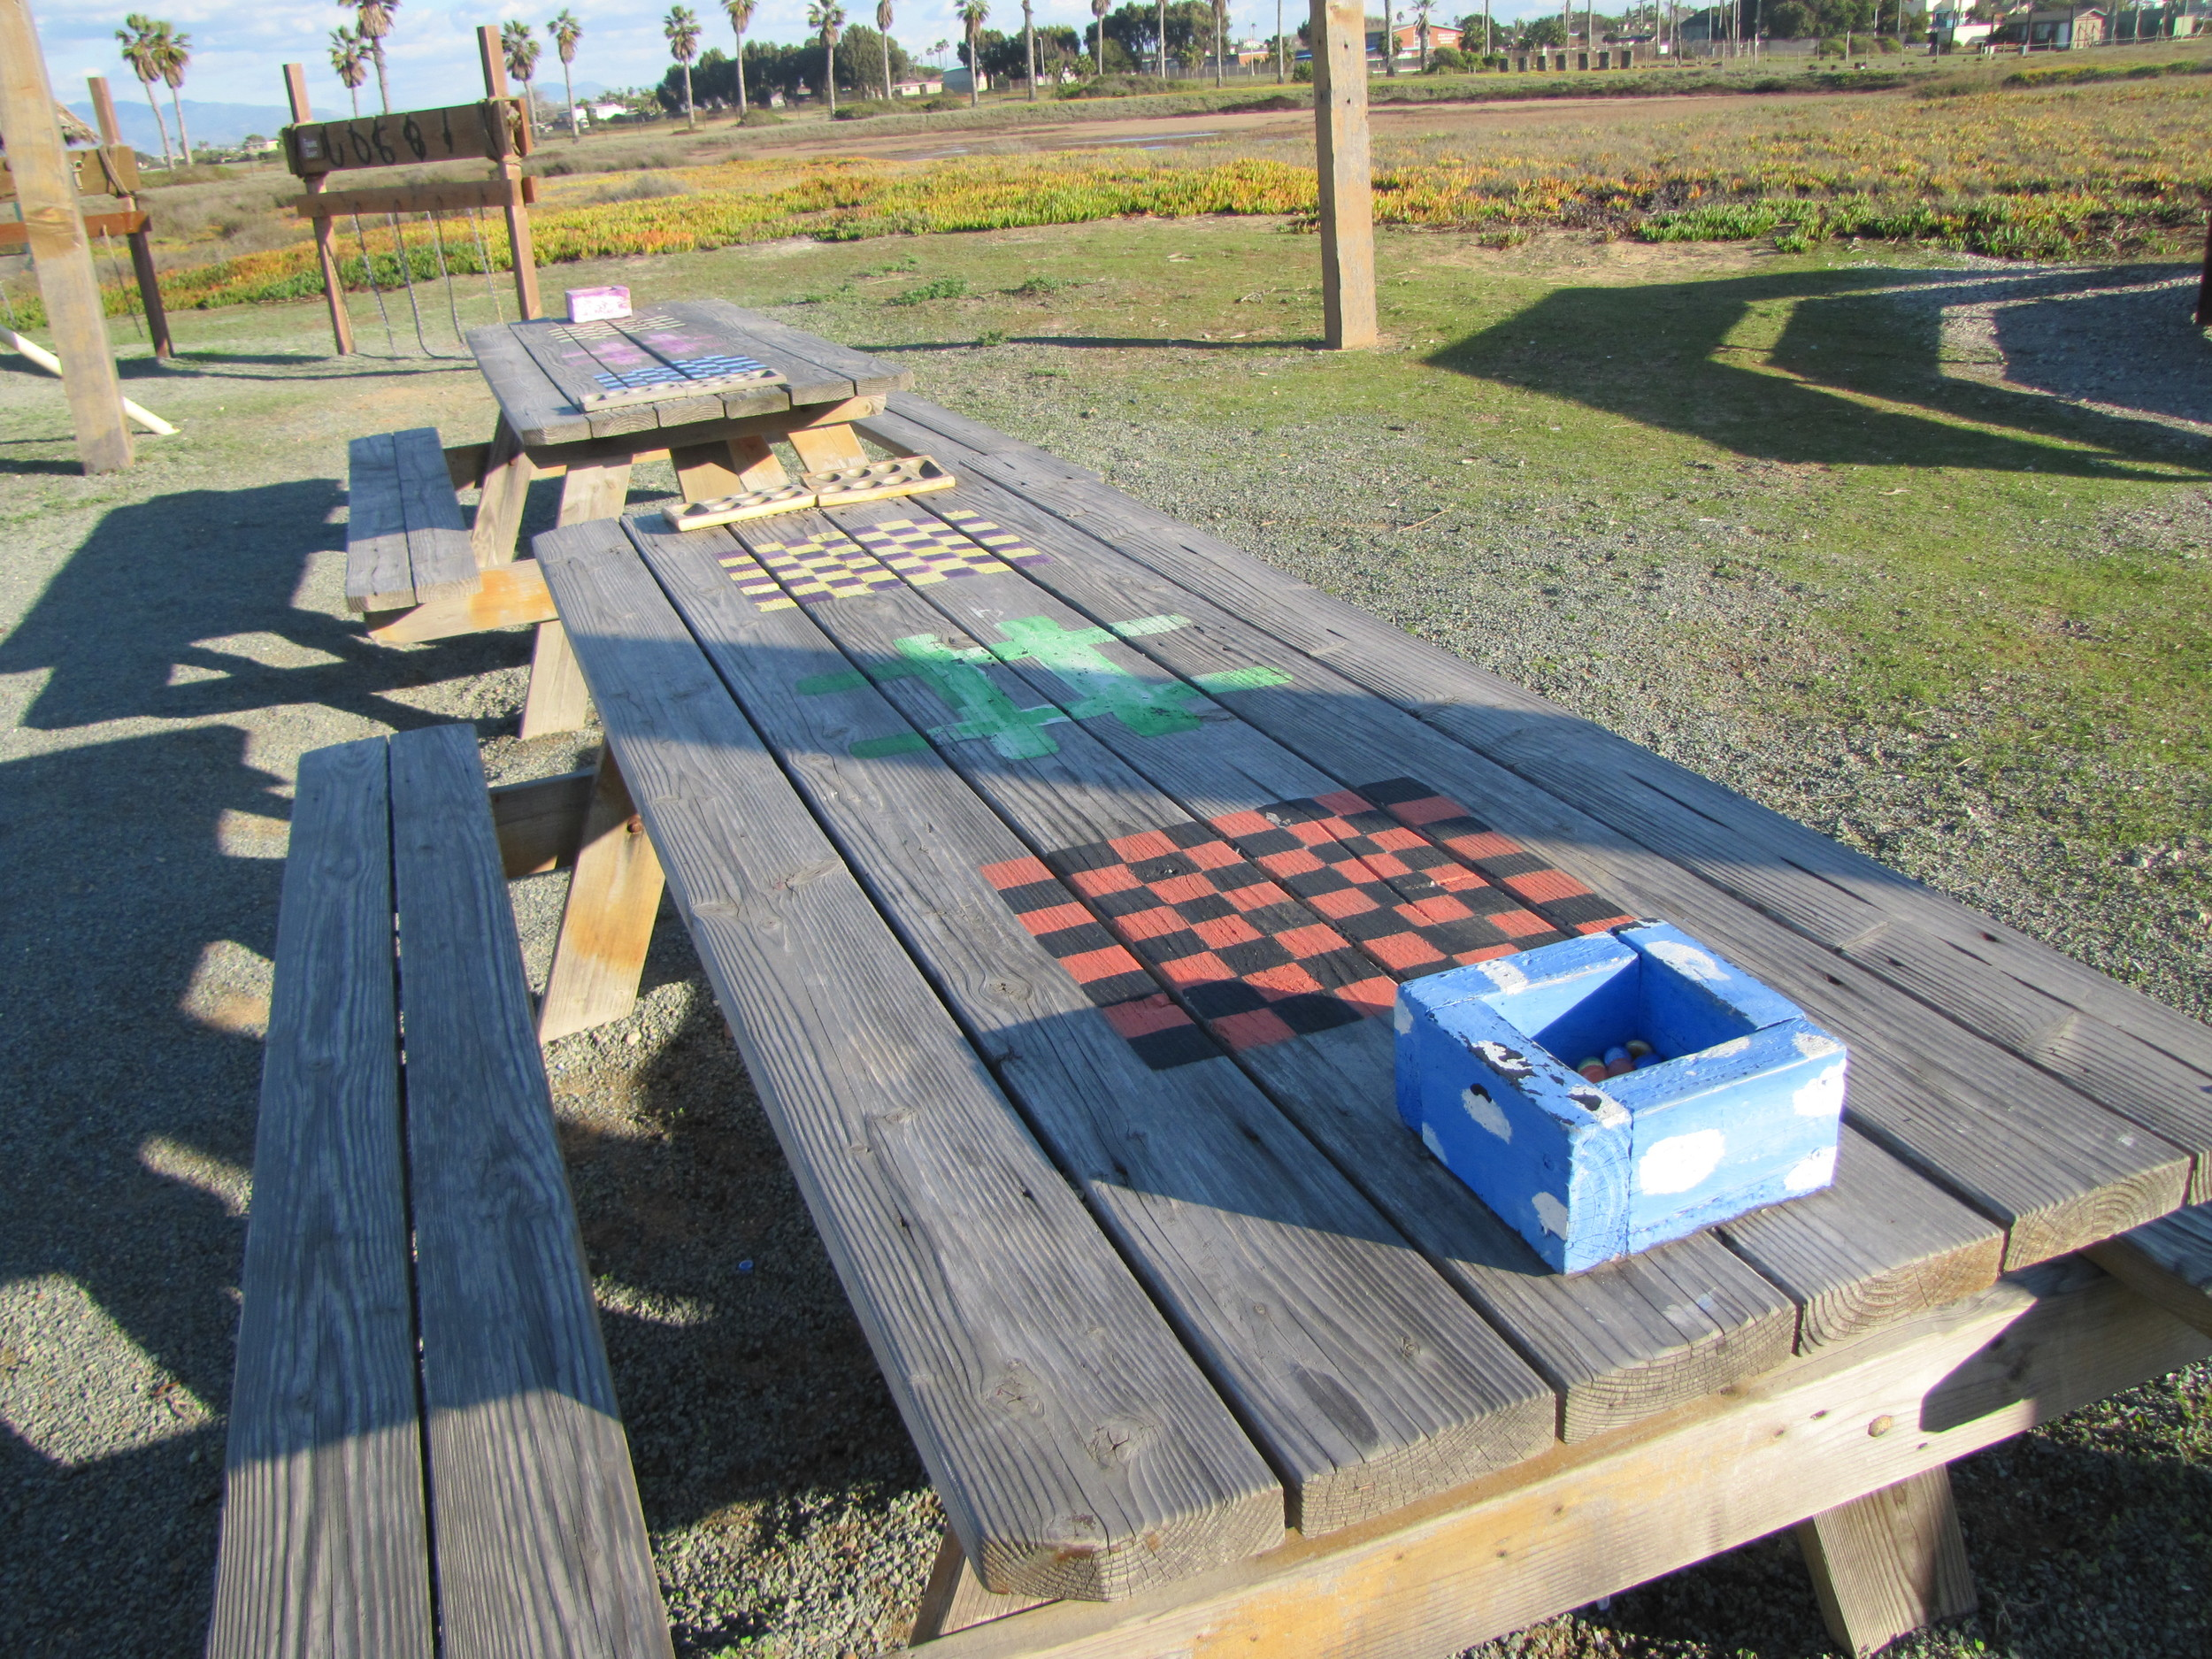 Picnic Table Games Camp Surf